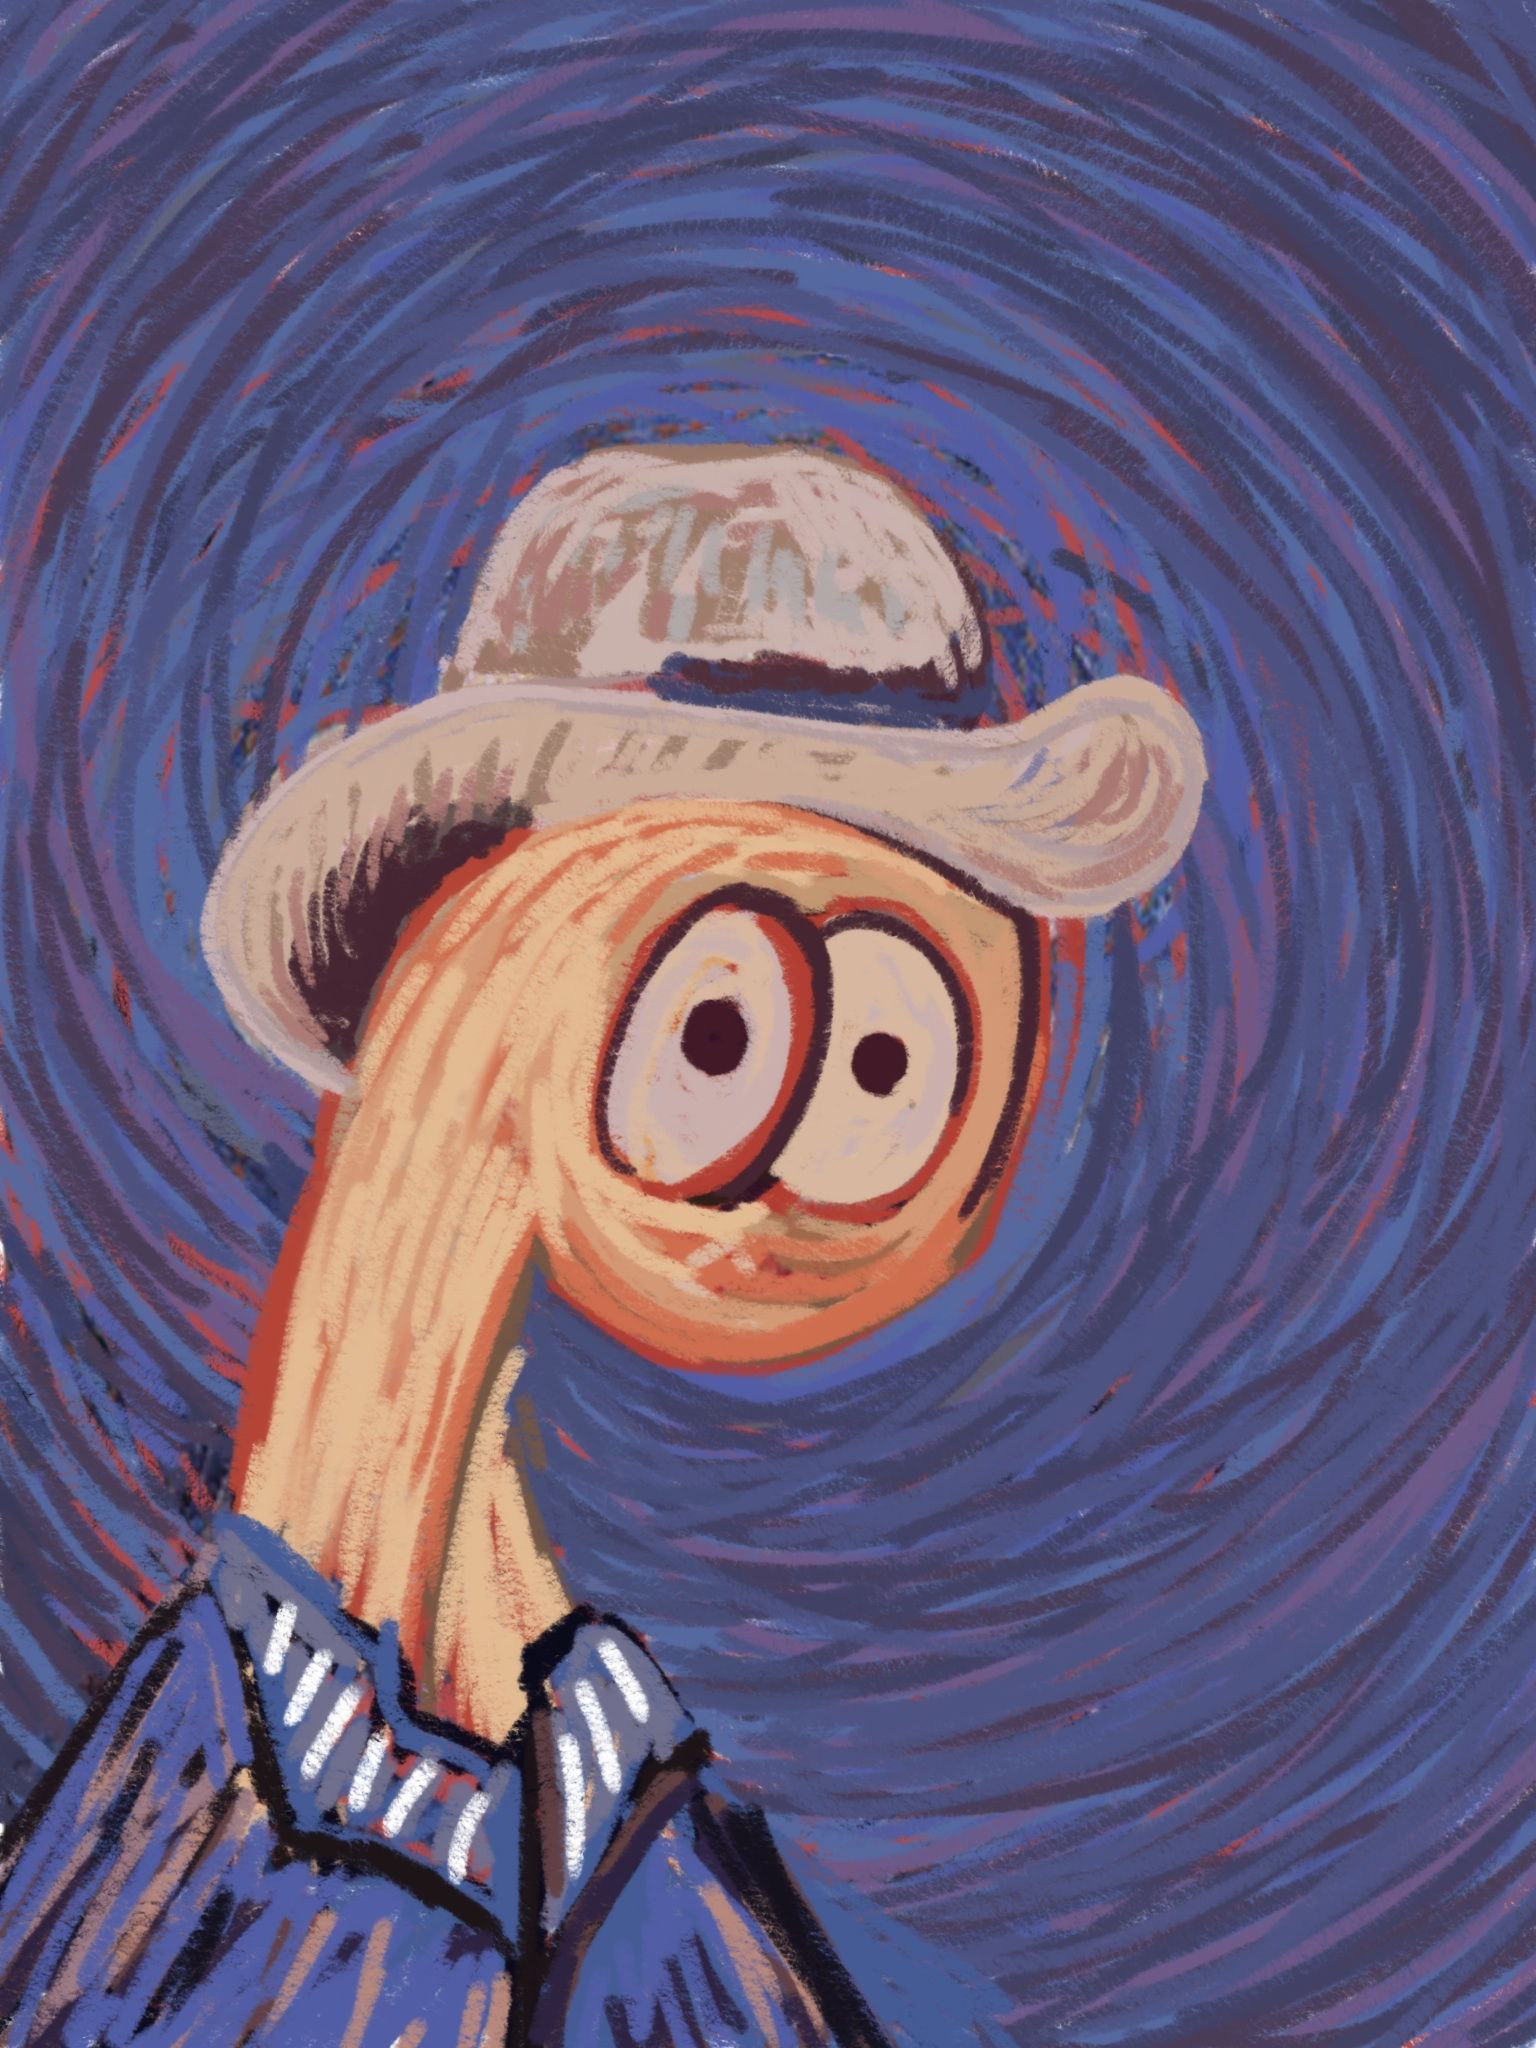 406b: Portrait of a Thing with Hat